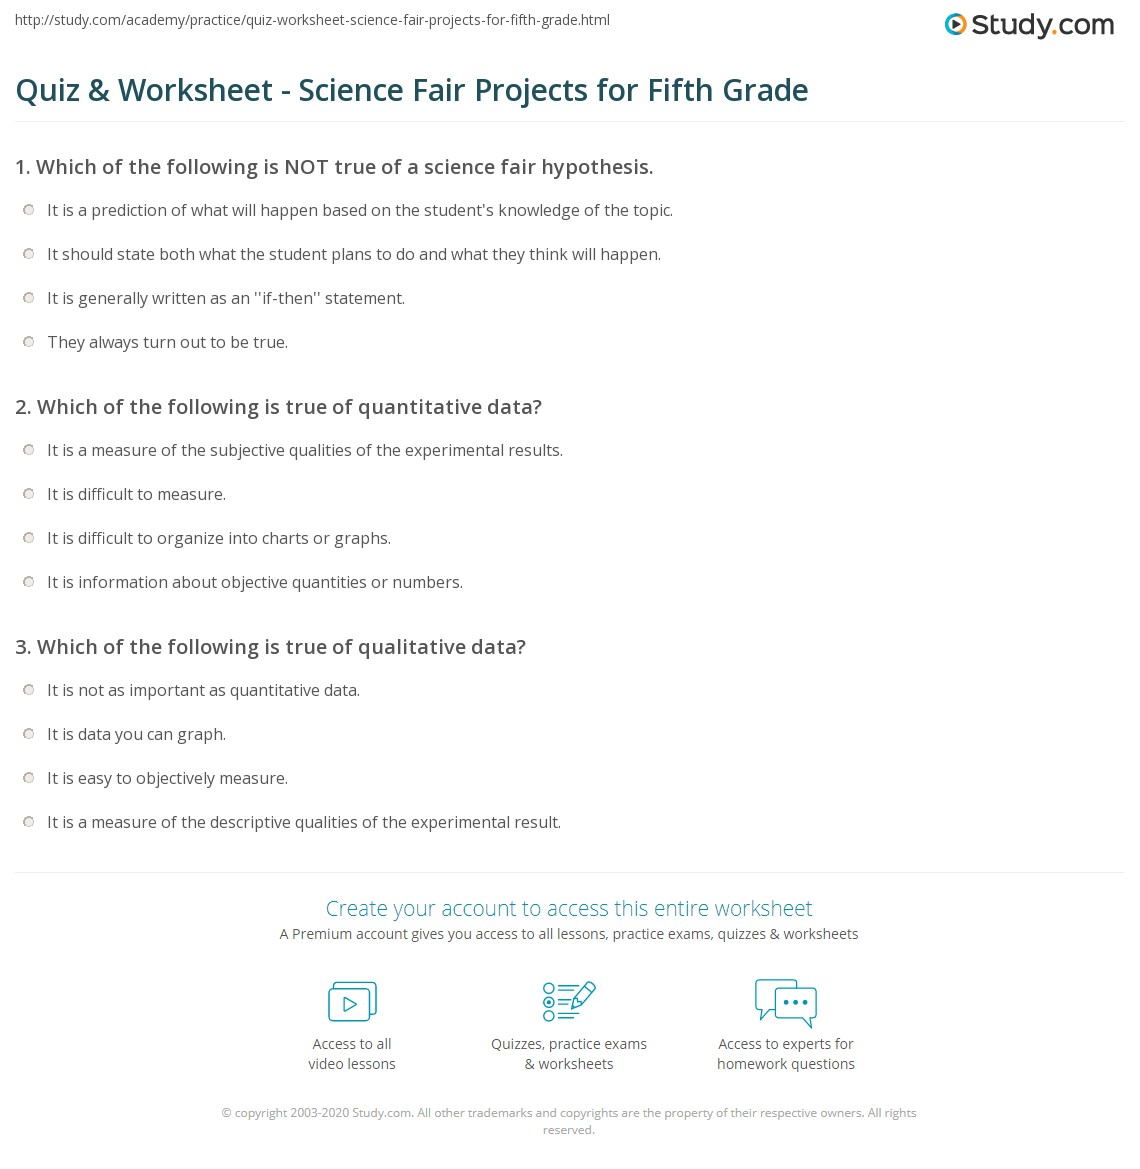 hight resolution of Quiz \u0026 Worksheet - Science Fair Projects for Fifth Grade   Study.com